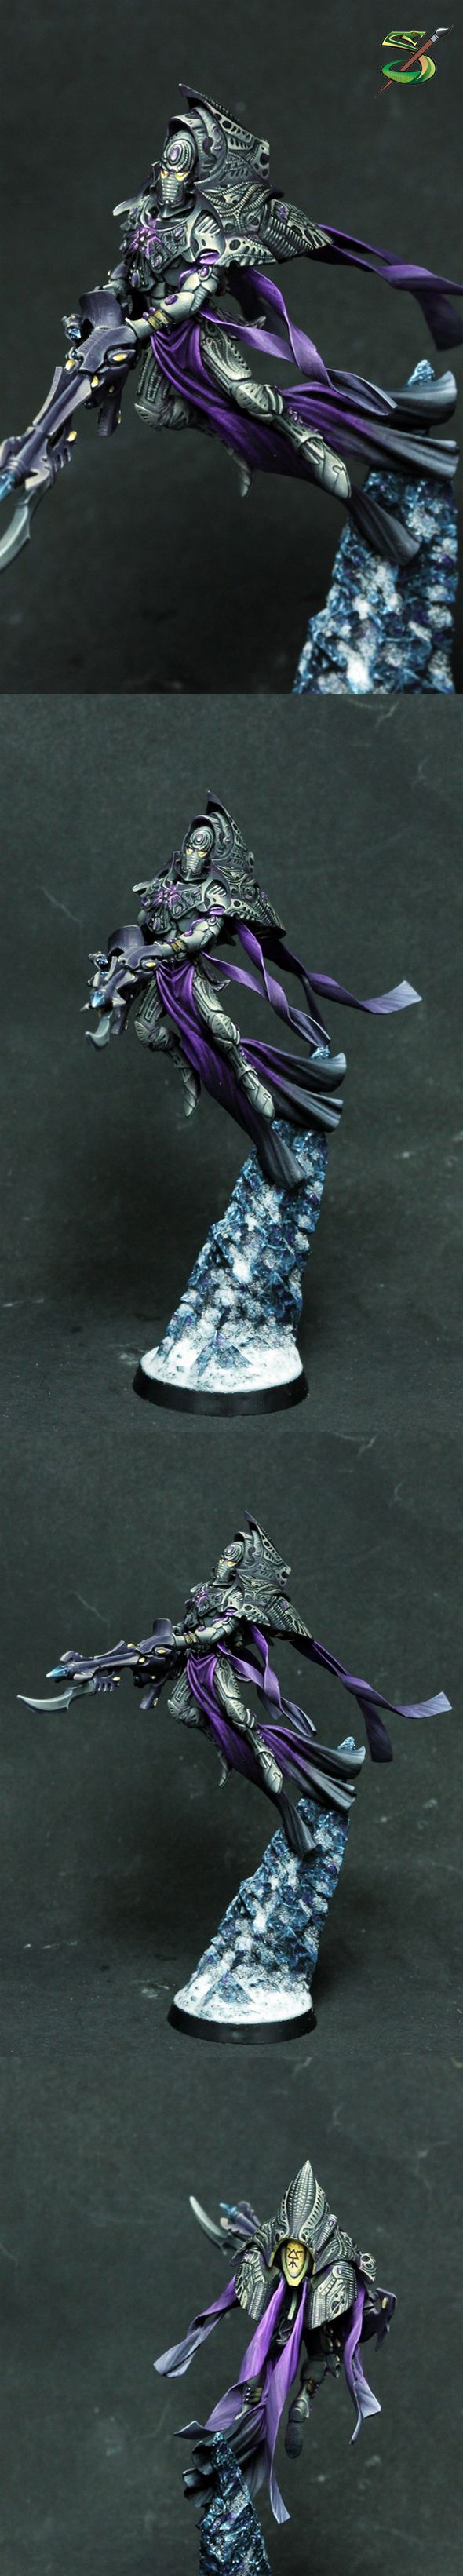 40k - Irillyth, Eldar Phoenix Lord of the Shadow Spectres